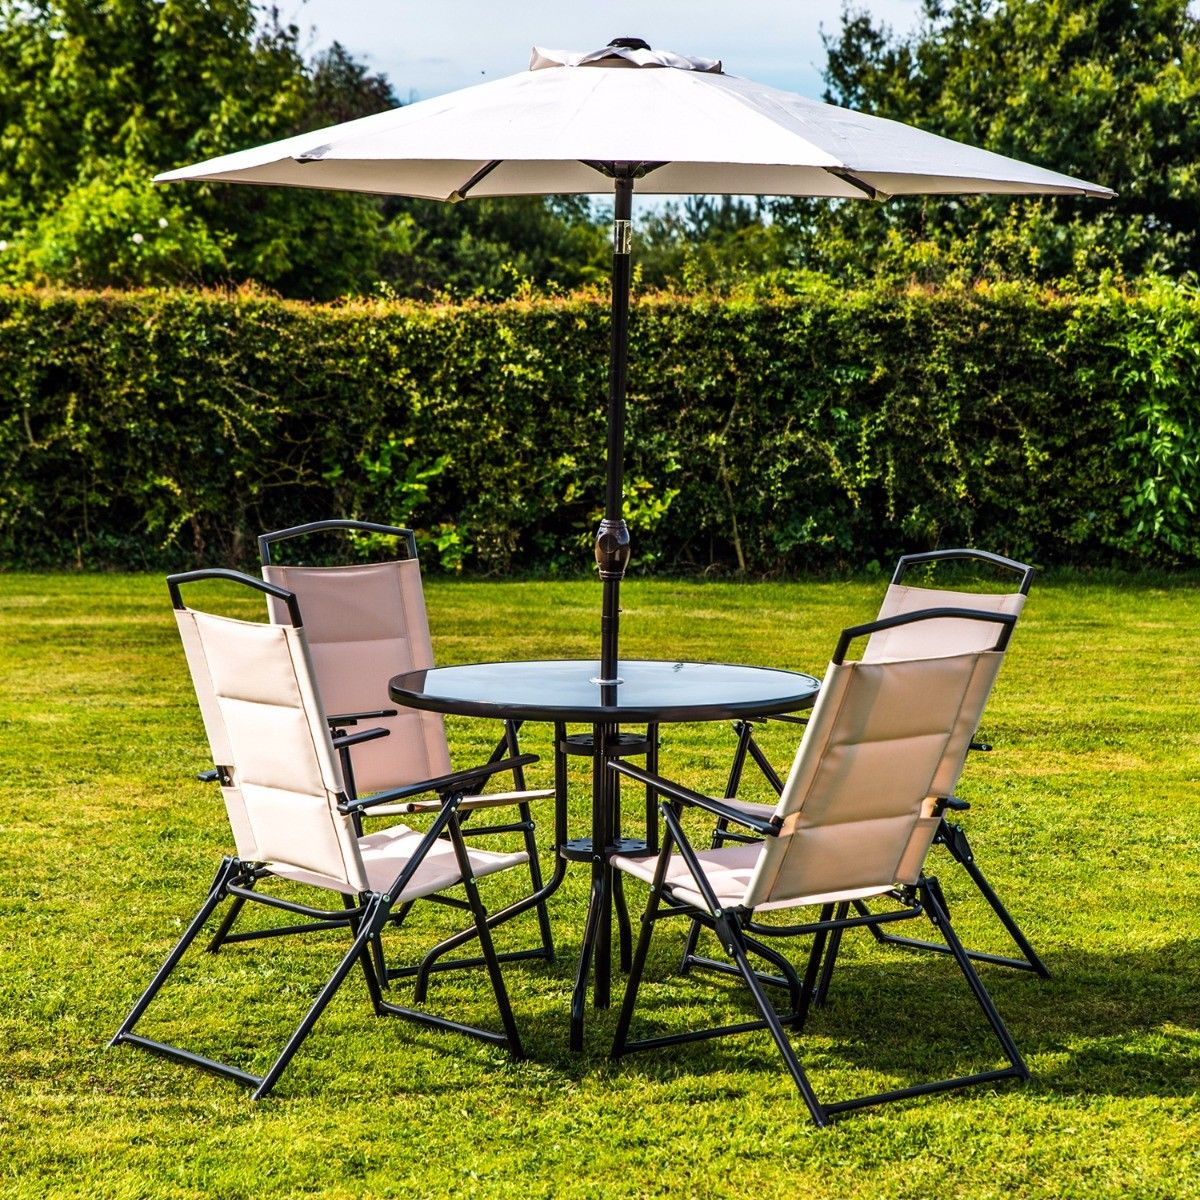 DELUXE 6 PIECE OUTDOOR GARDEN PATIO FURNITURE SET WITH PADDED CUSHIONS & PARASOL